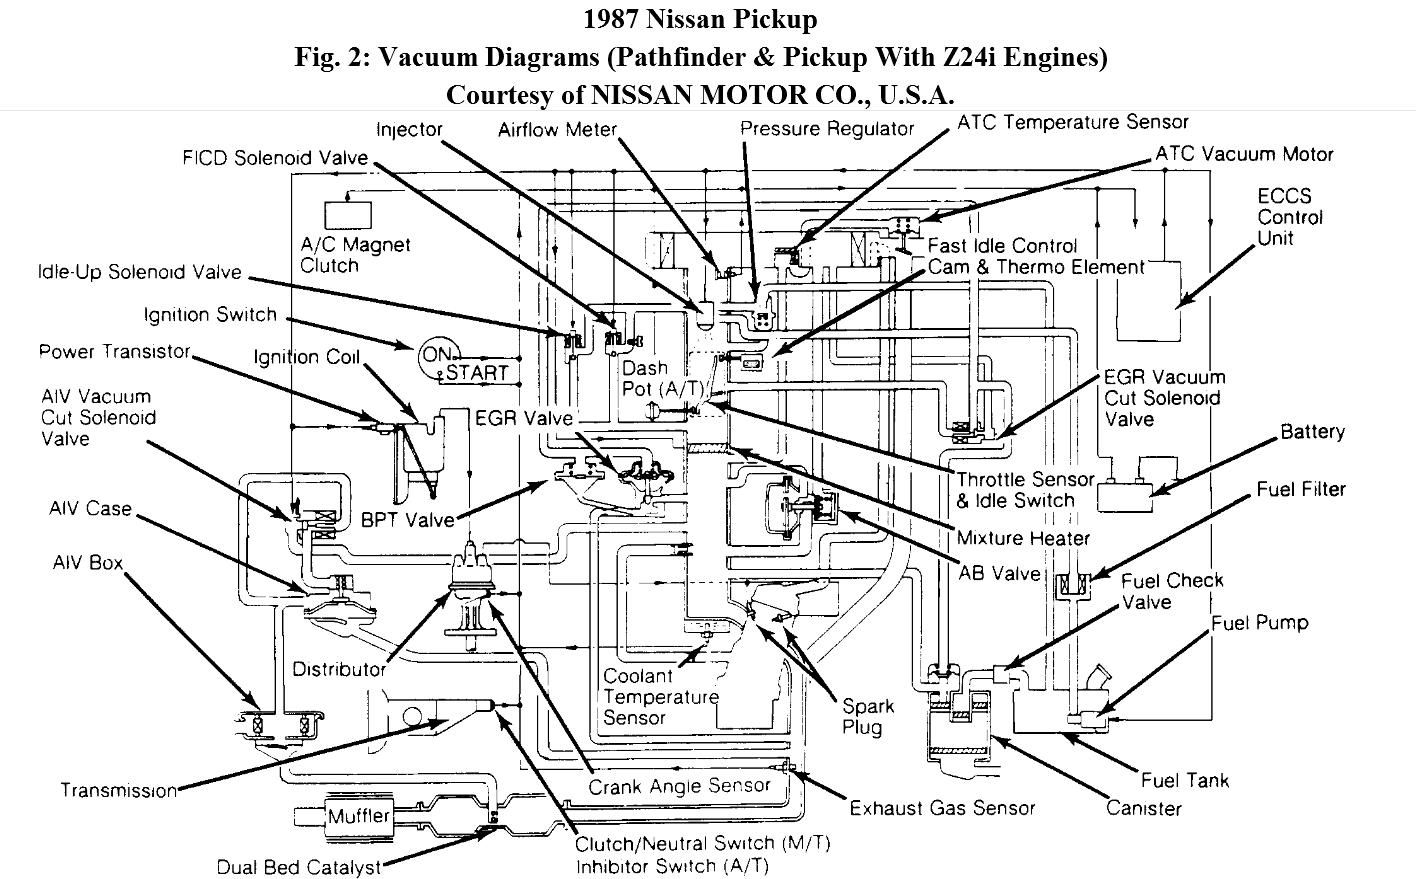 Nissan D21 Engine Diagram - Wiring Diagram Sample on 1994 ford ranger wiring diagram, 1994 honda prelude wiring diagram, 1994 lexus gs300 wiring diagram, 1994 jeep wrangler wiring diagram, 1994 toyota hilux wiring diagram, 1994 isuzu trooper wiring diagram, 1994 subaru justy wiring diagram, 1994 mitsubishi 3000gt wiring diagram, 1994 toyota celica wiring diagram,